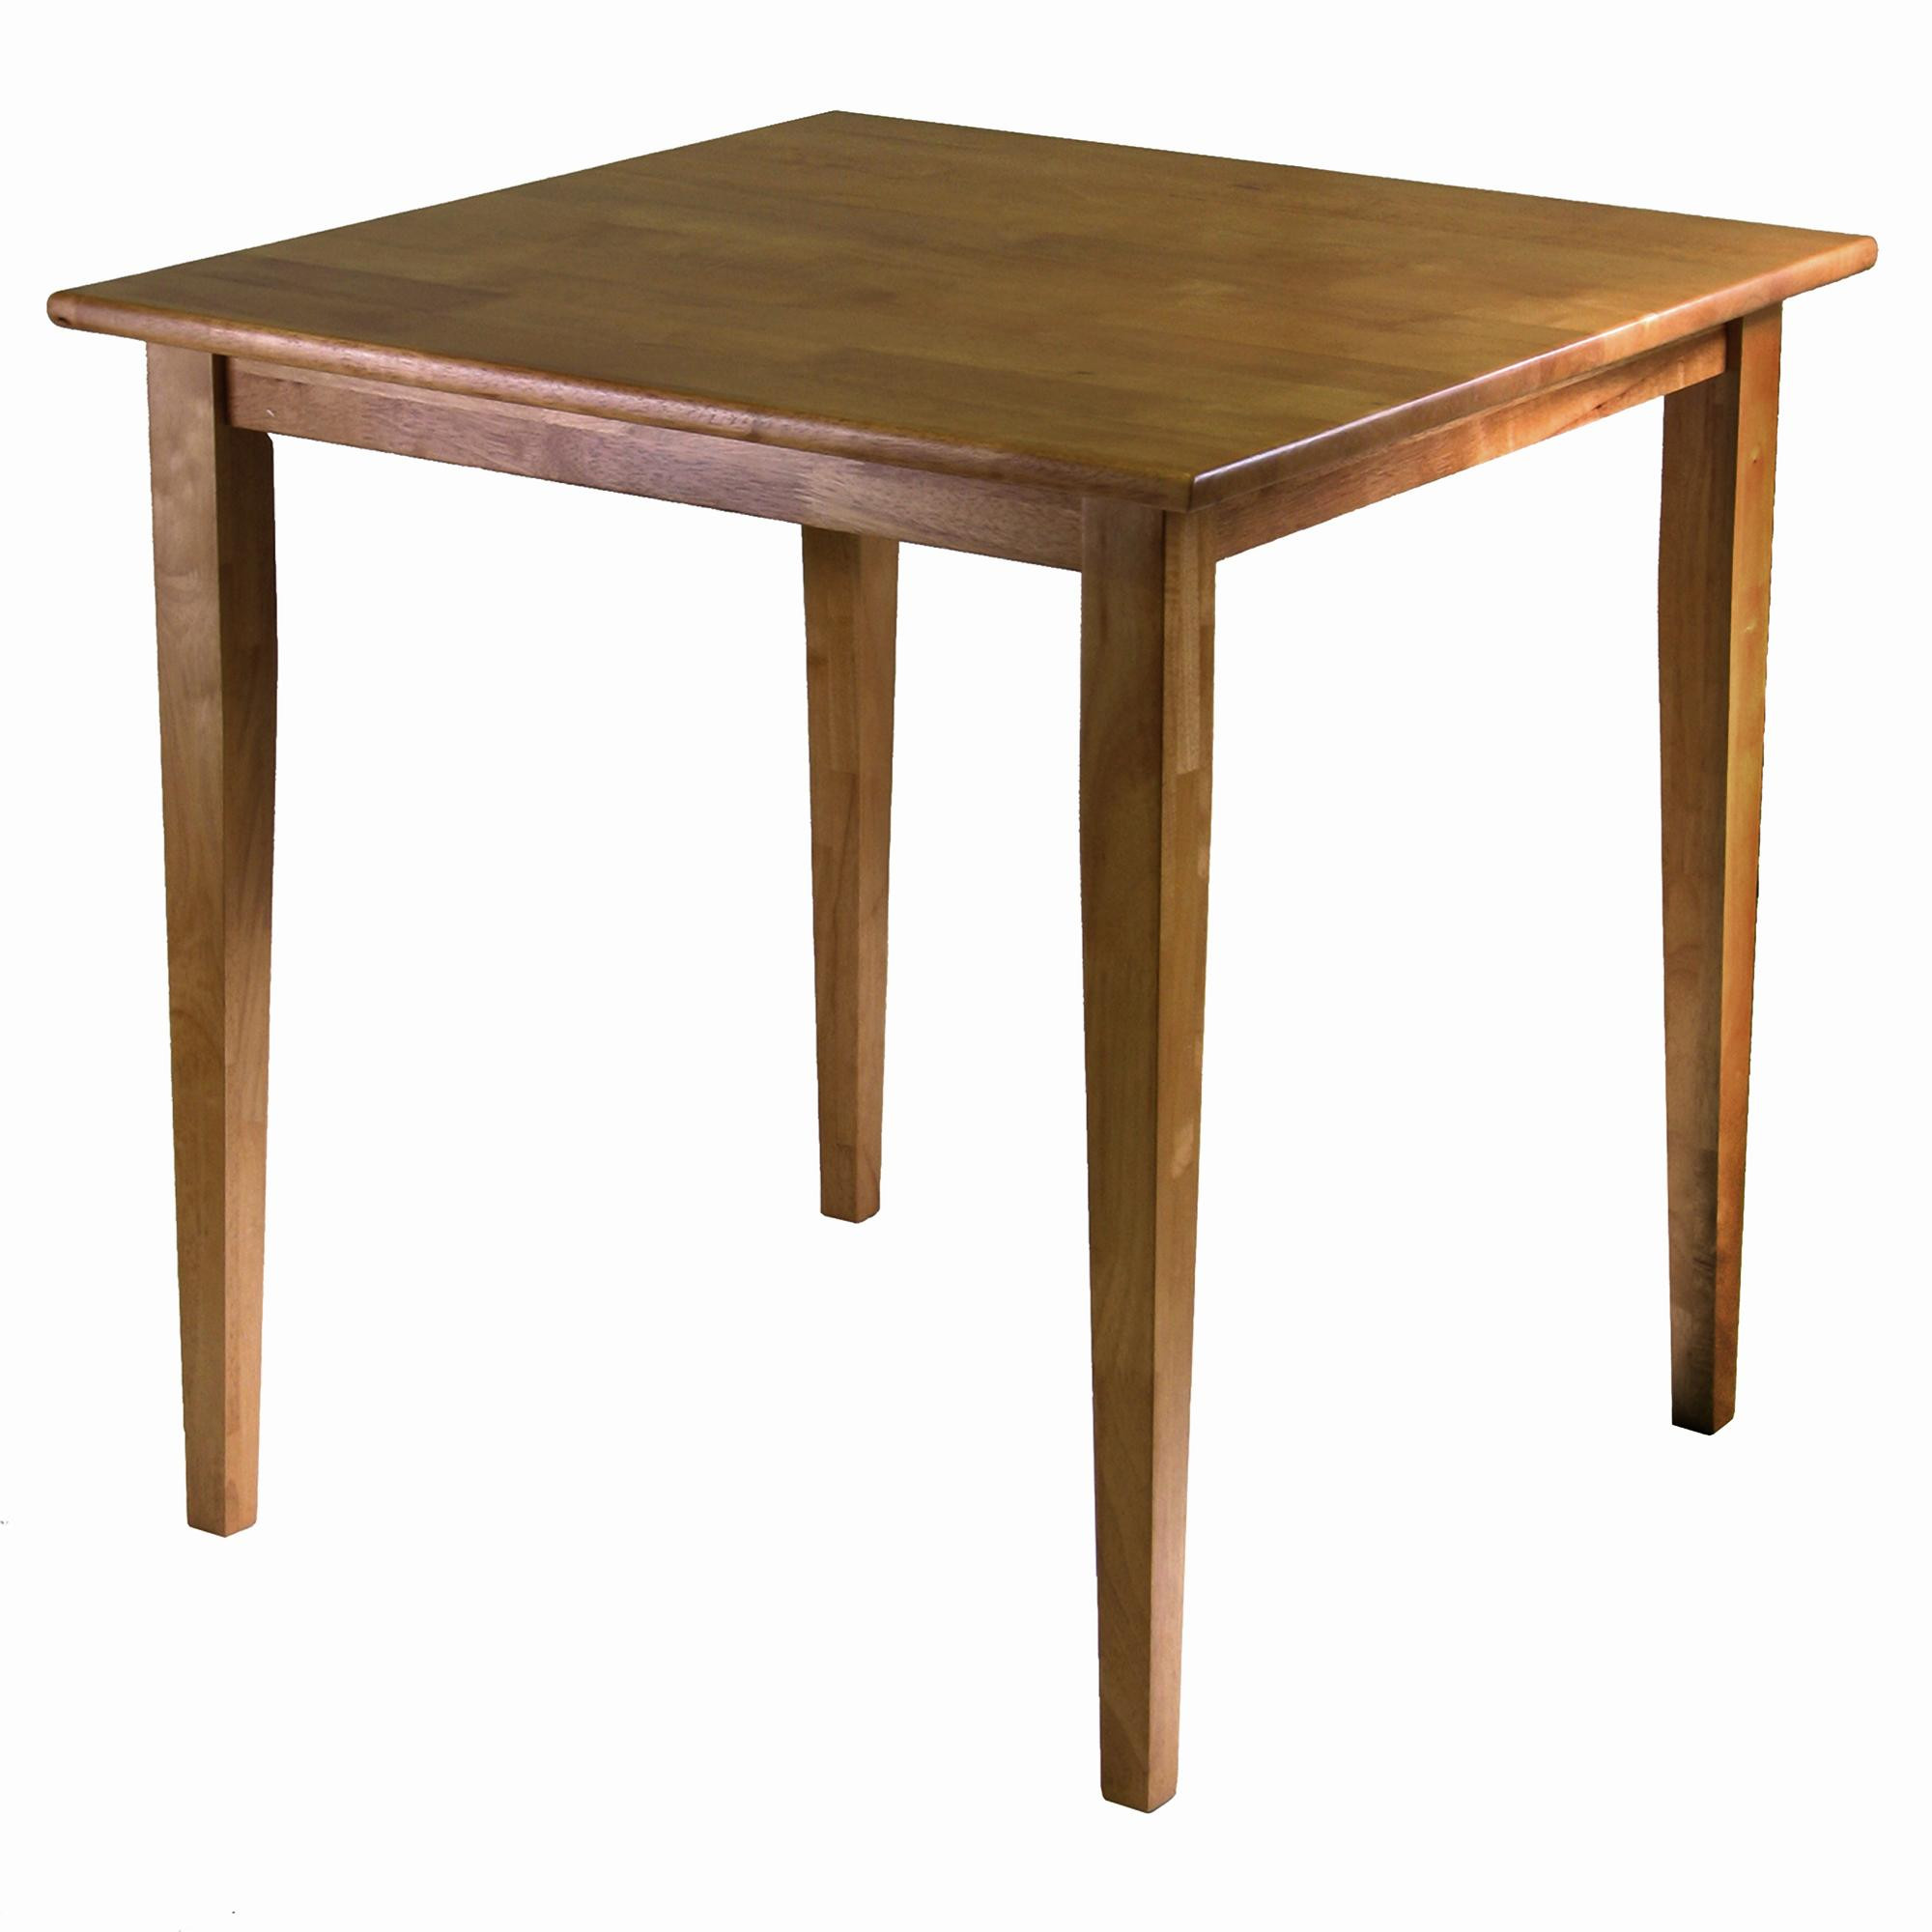 Best ideas about Amazon Dining Table . Save or Pin Amazon Winsome Wood Groveland Square Dining Table Now.